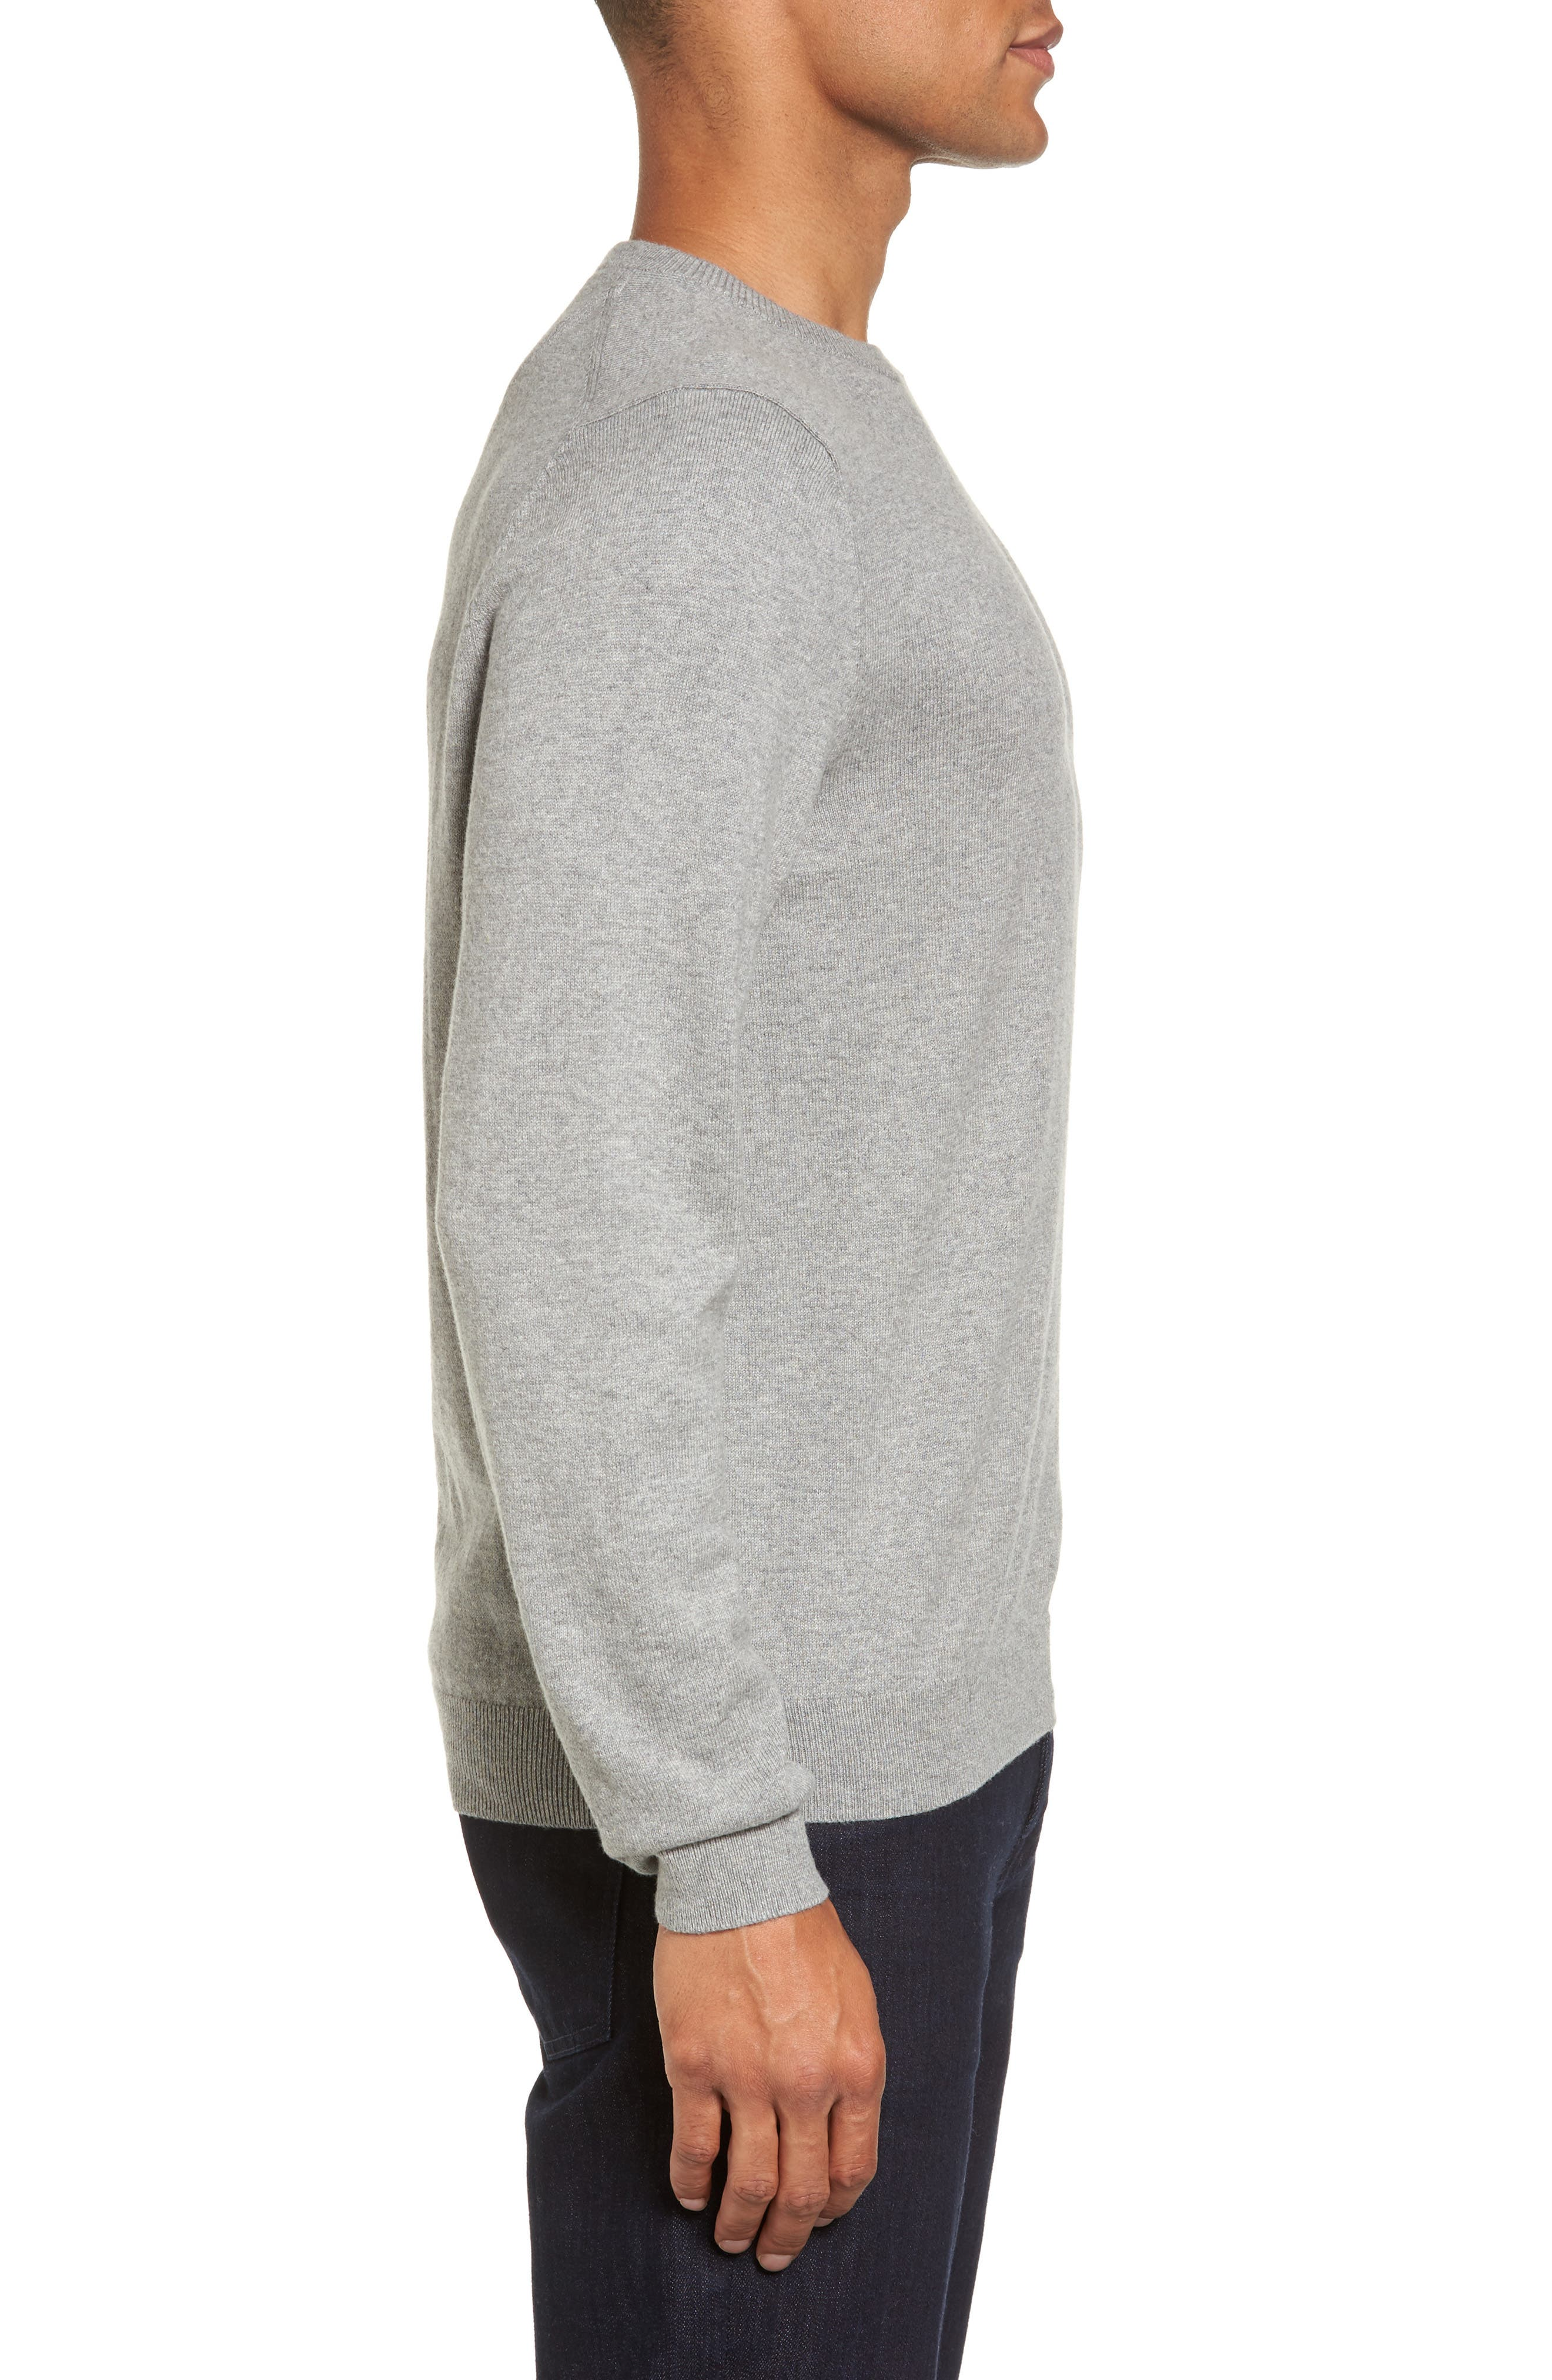 Alternate Image 3  - Nordstrom Men's Shop Cotton & Cashmere Crewneck Sweater (Regular & Tall)